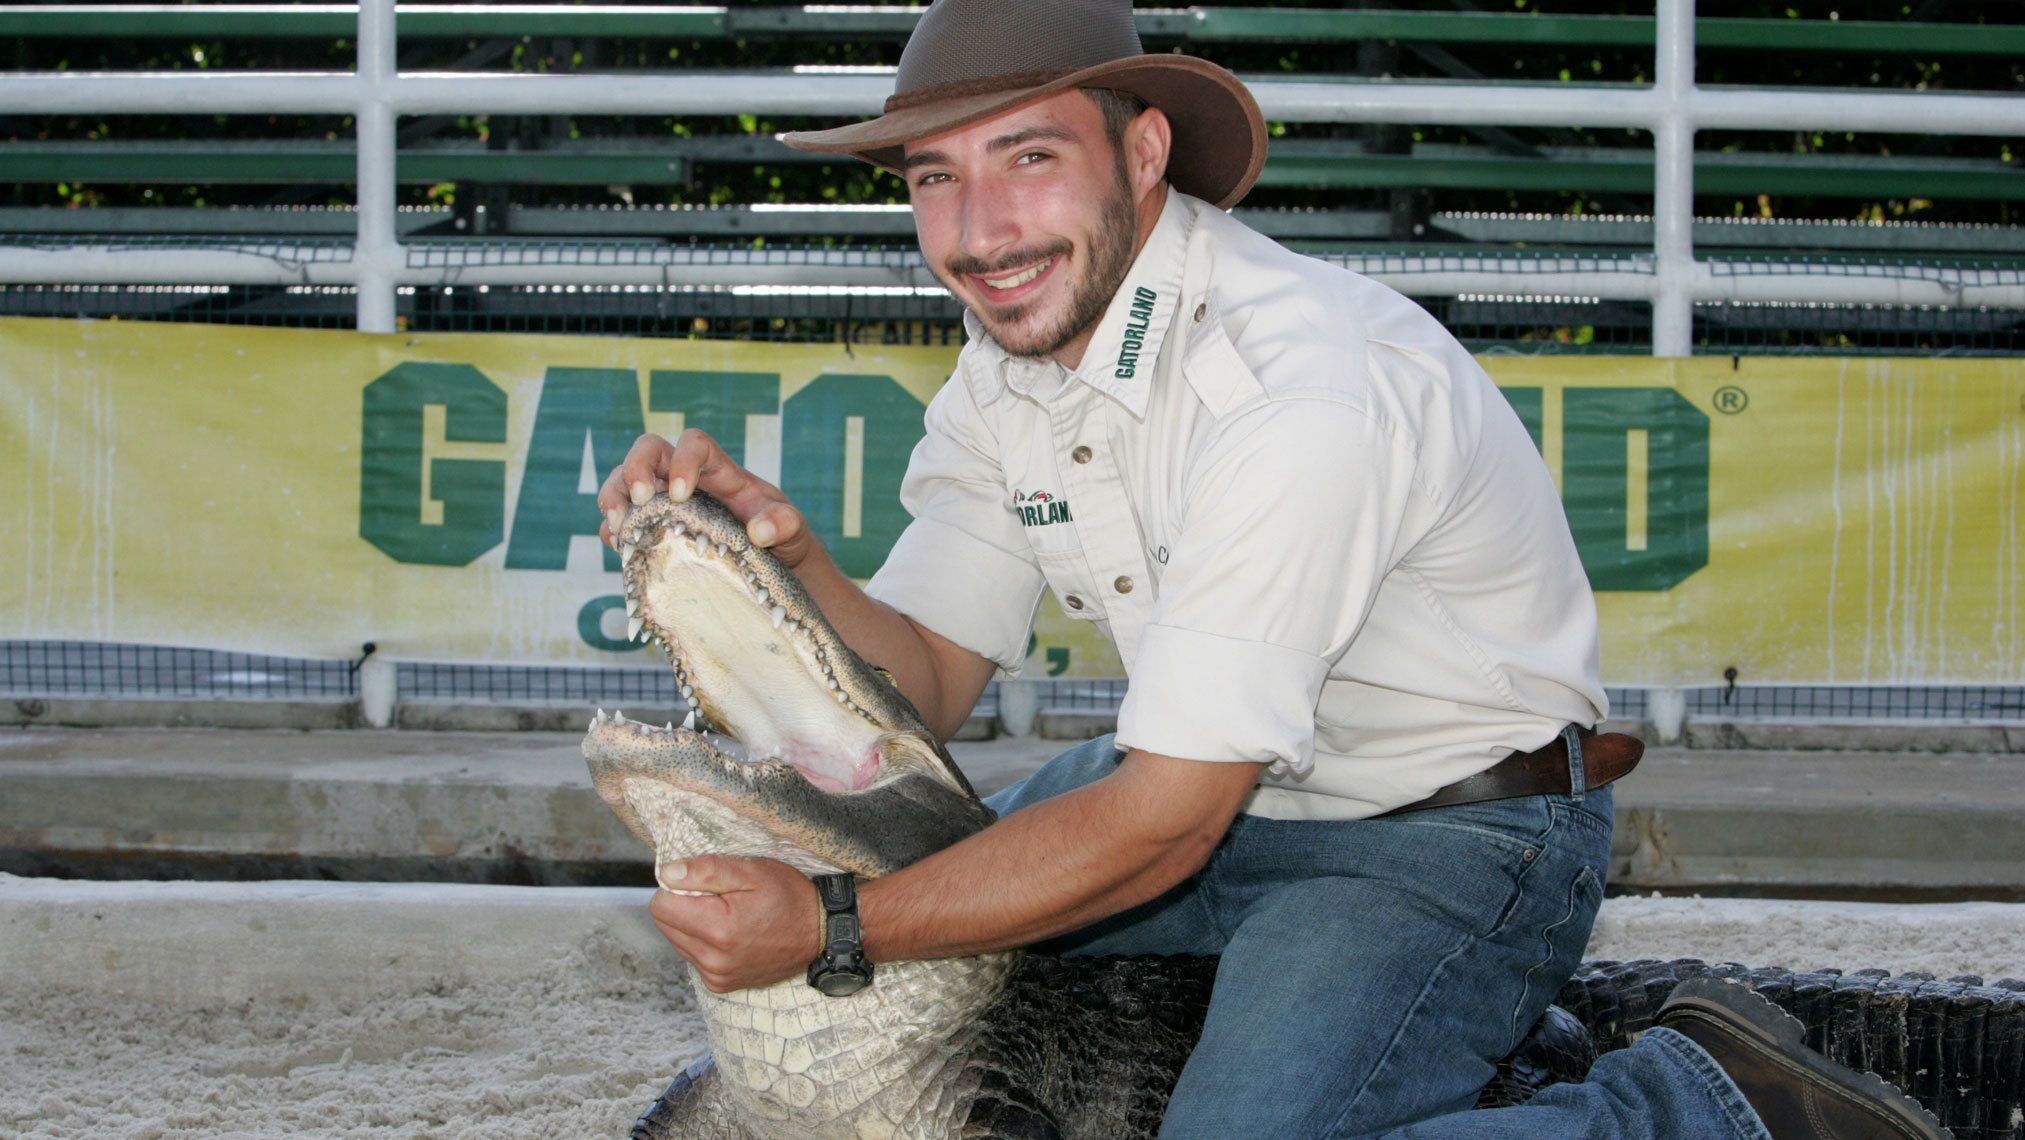 Animal handler wrestling an alligator during a live show at Gatorland in Orlando.